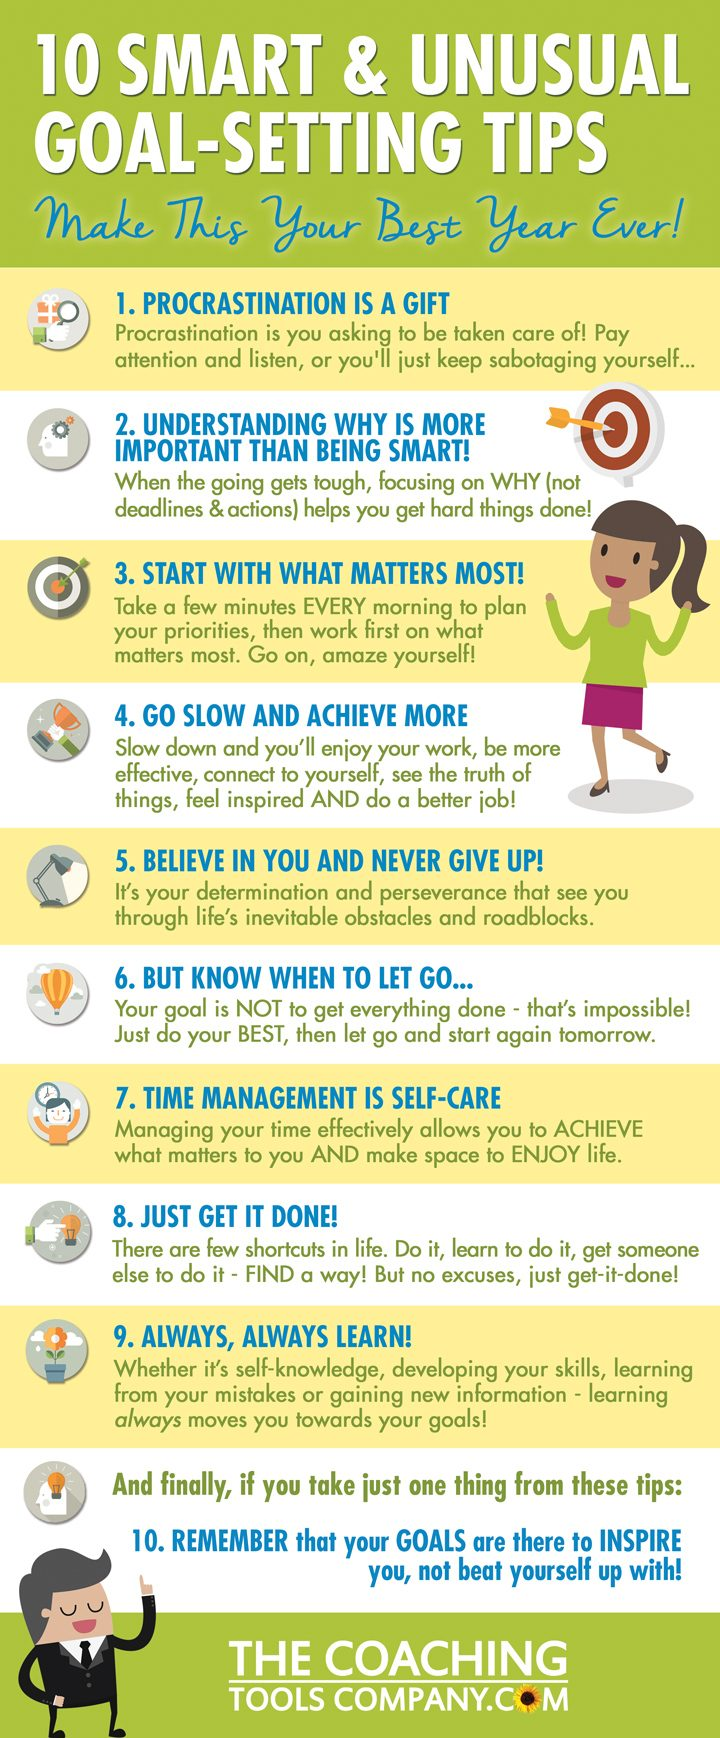 10 Smart & Unusual Goal-Setting Tips Infographic